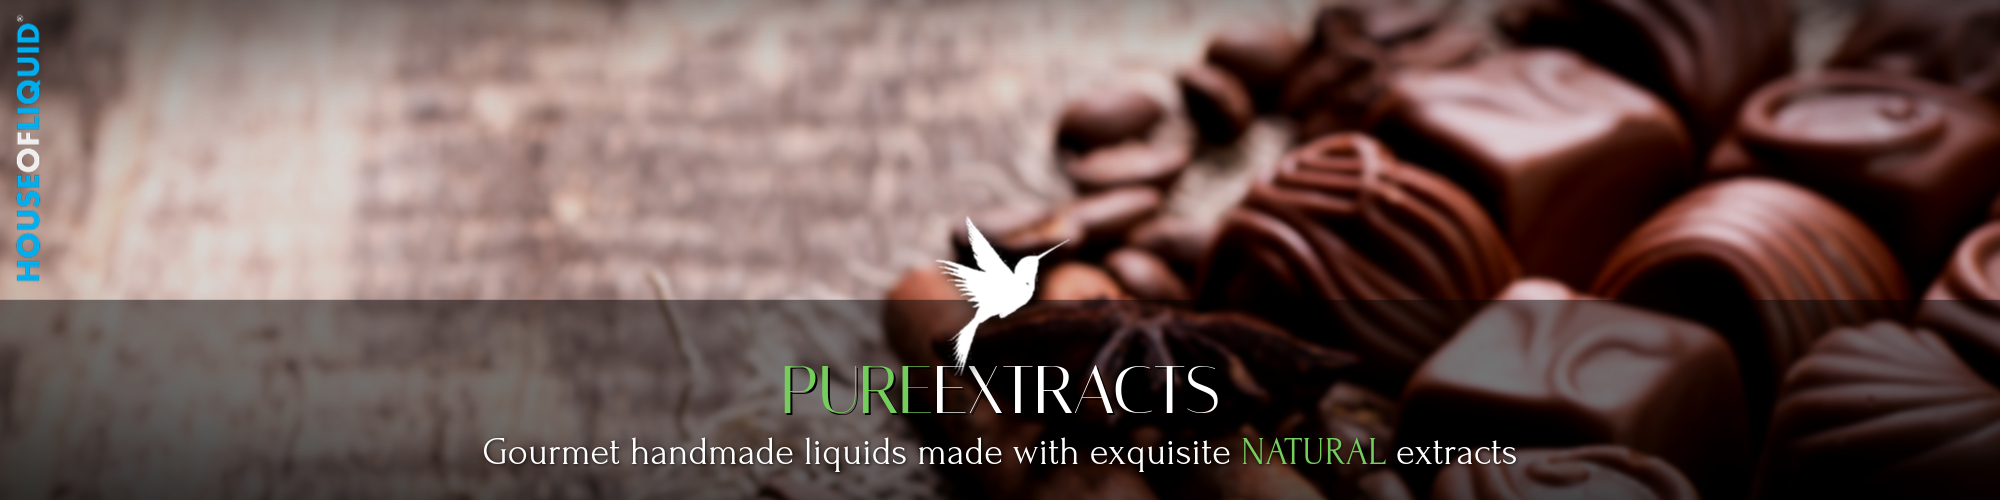 pure-extracts-category-banner.jpg